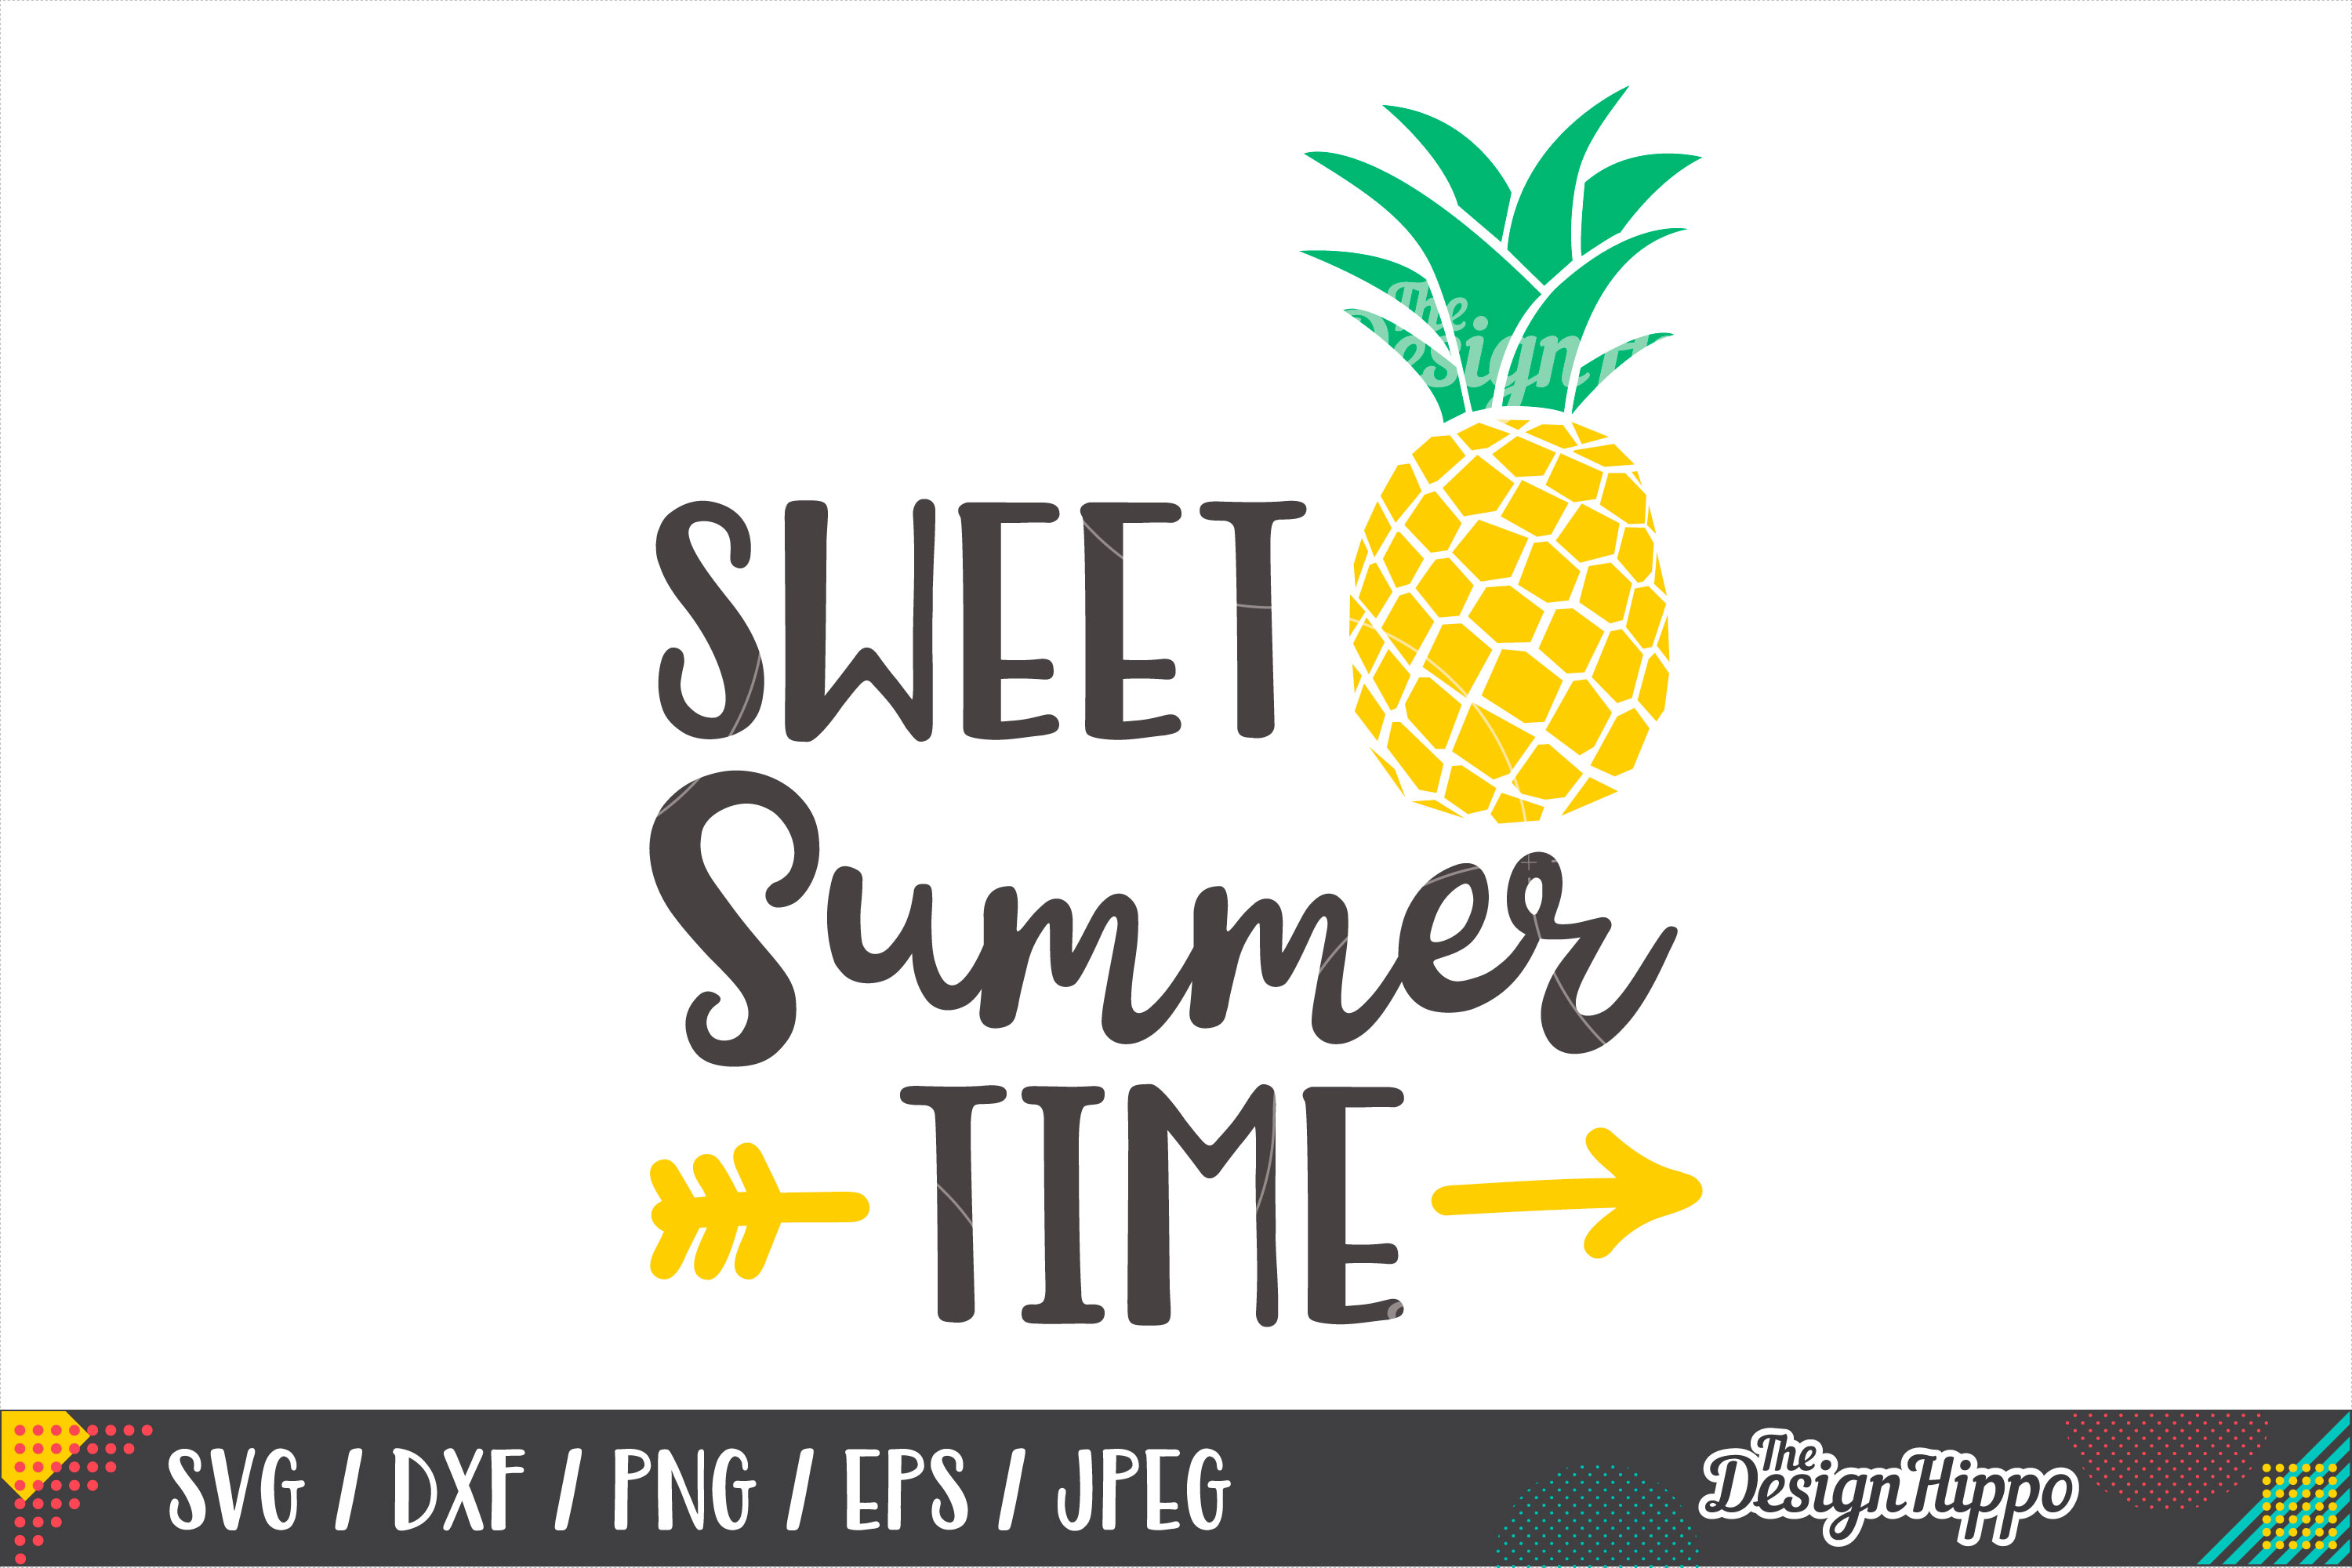 Sweet Summer Time SVG, Pineapple, Kids, SVG DXF PNG Cut File example image 1